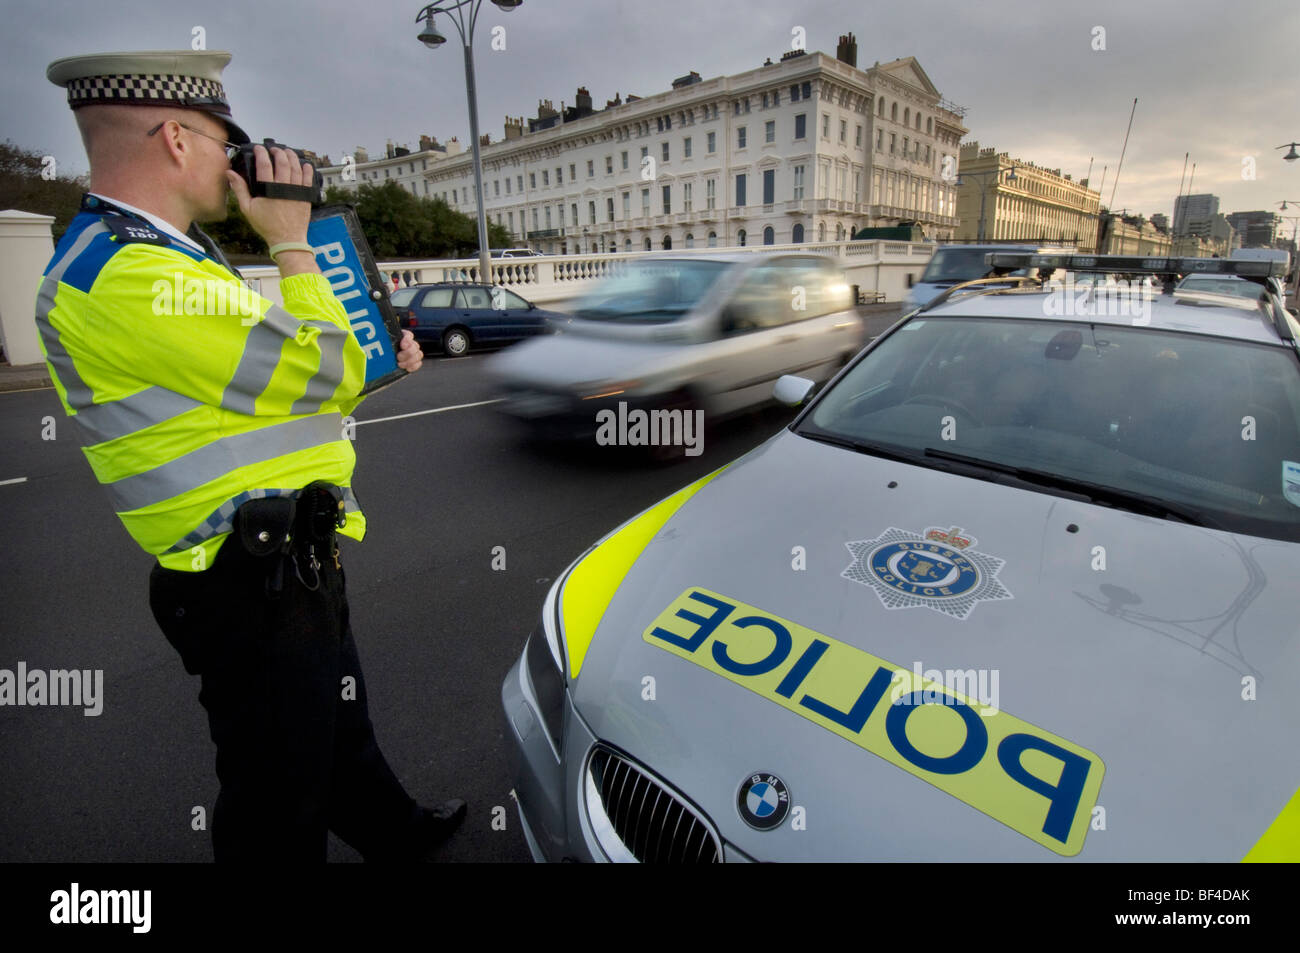 A police officer using a handheld laser camera on a city road to catch speeding motorists - Stock Image